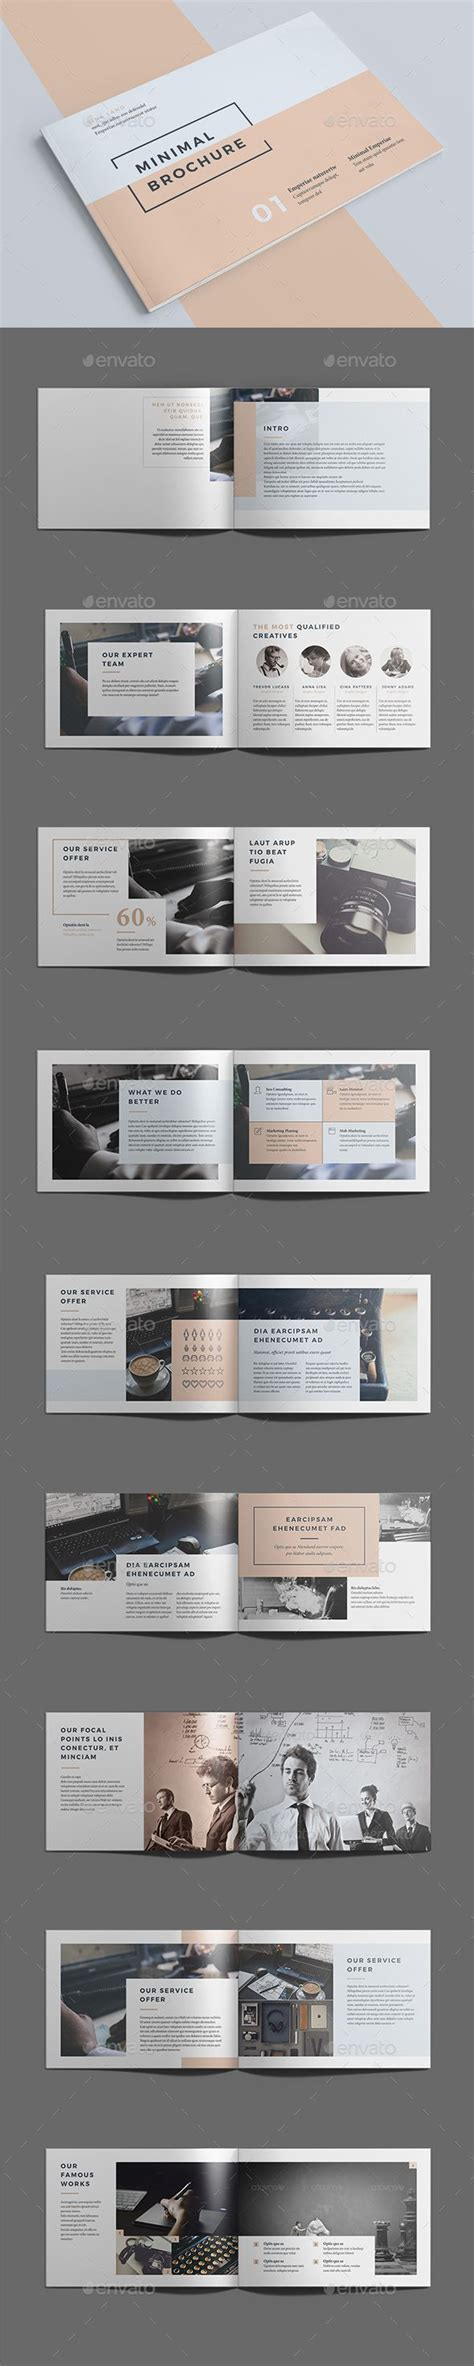 Pin By Best Graphic Design On Brochure Templates Graphic Design Layouts Booklet Design Design Indesign Landscape Template